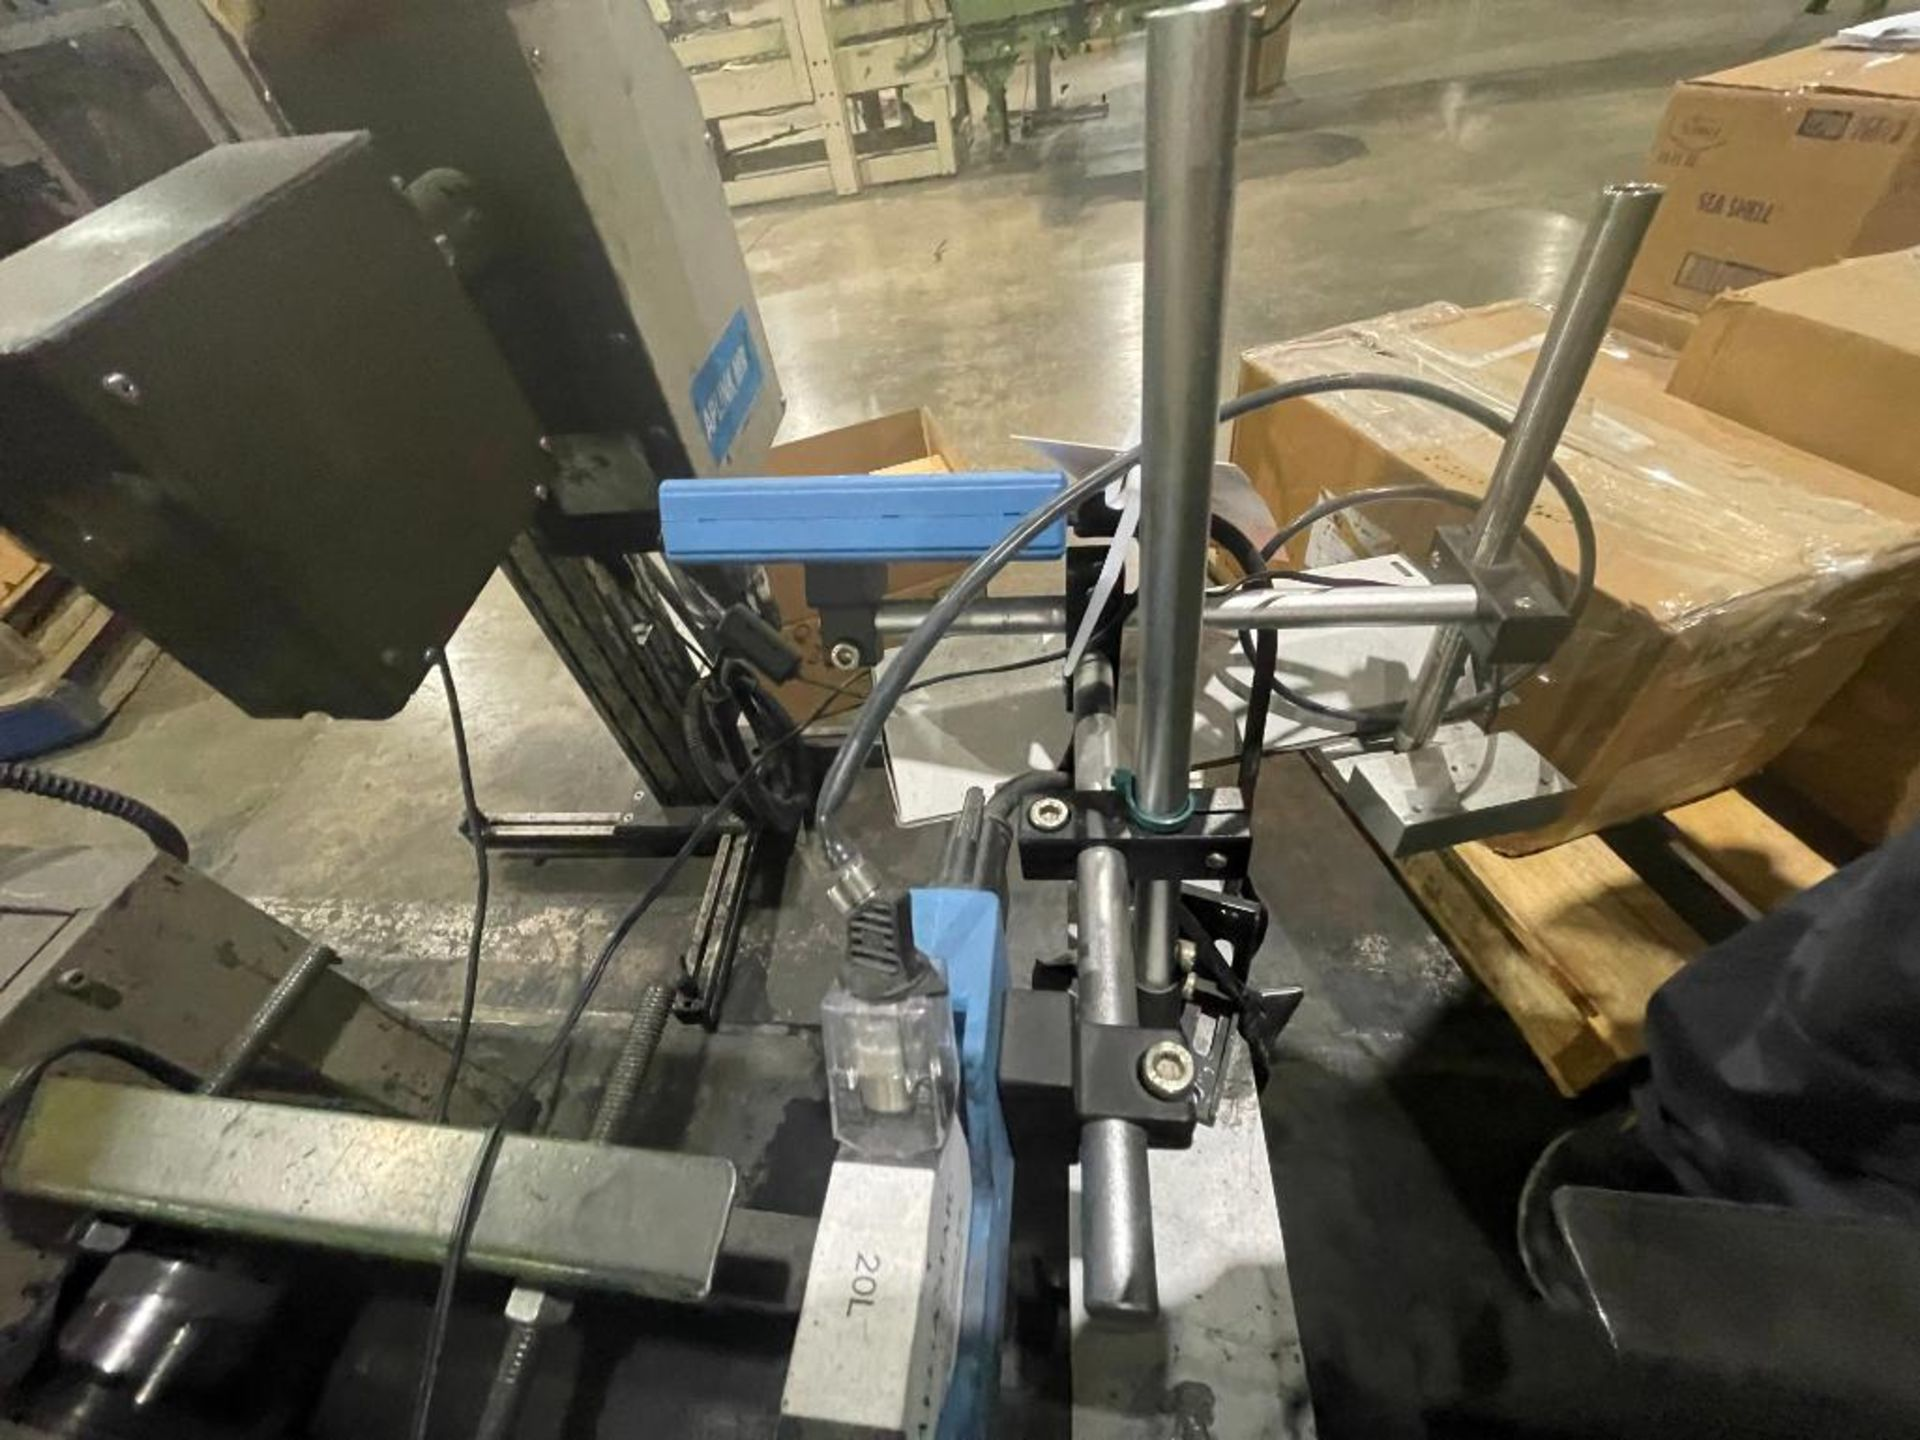 Automatic Printing Systems case coder - Image 12 of 14